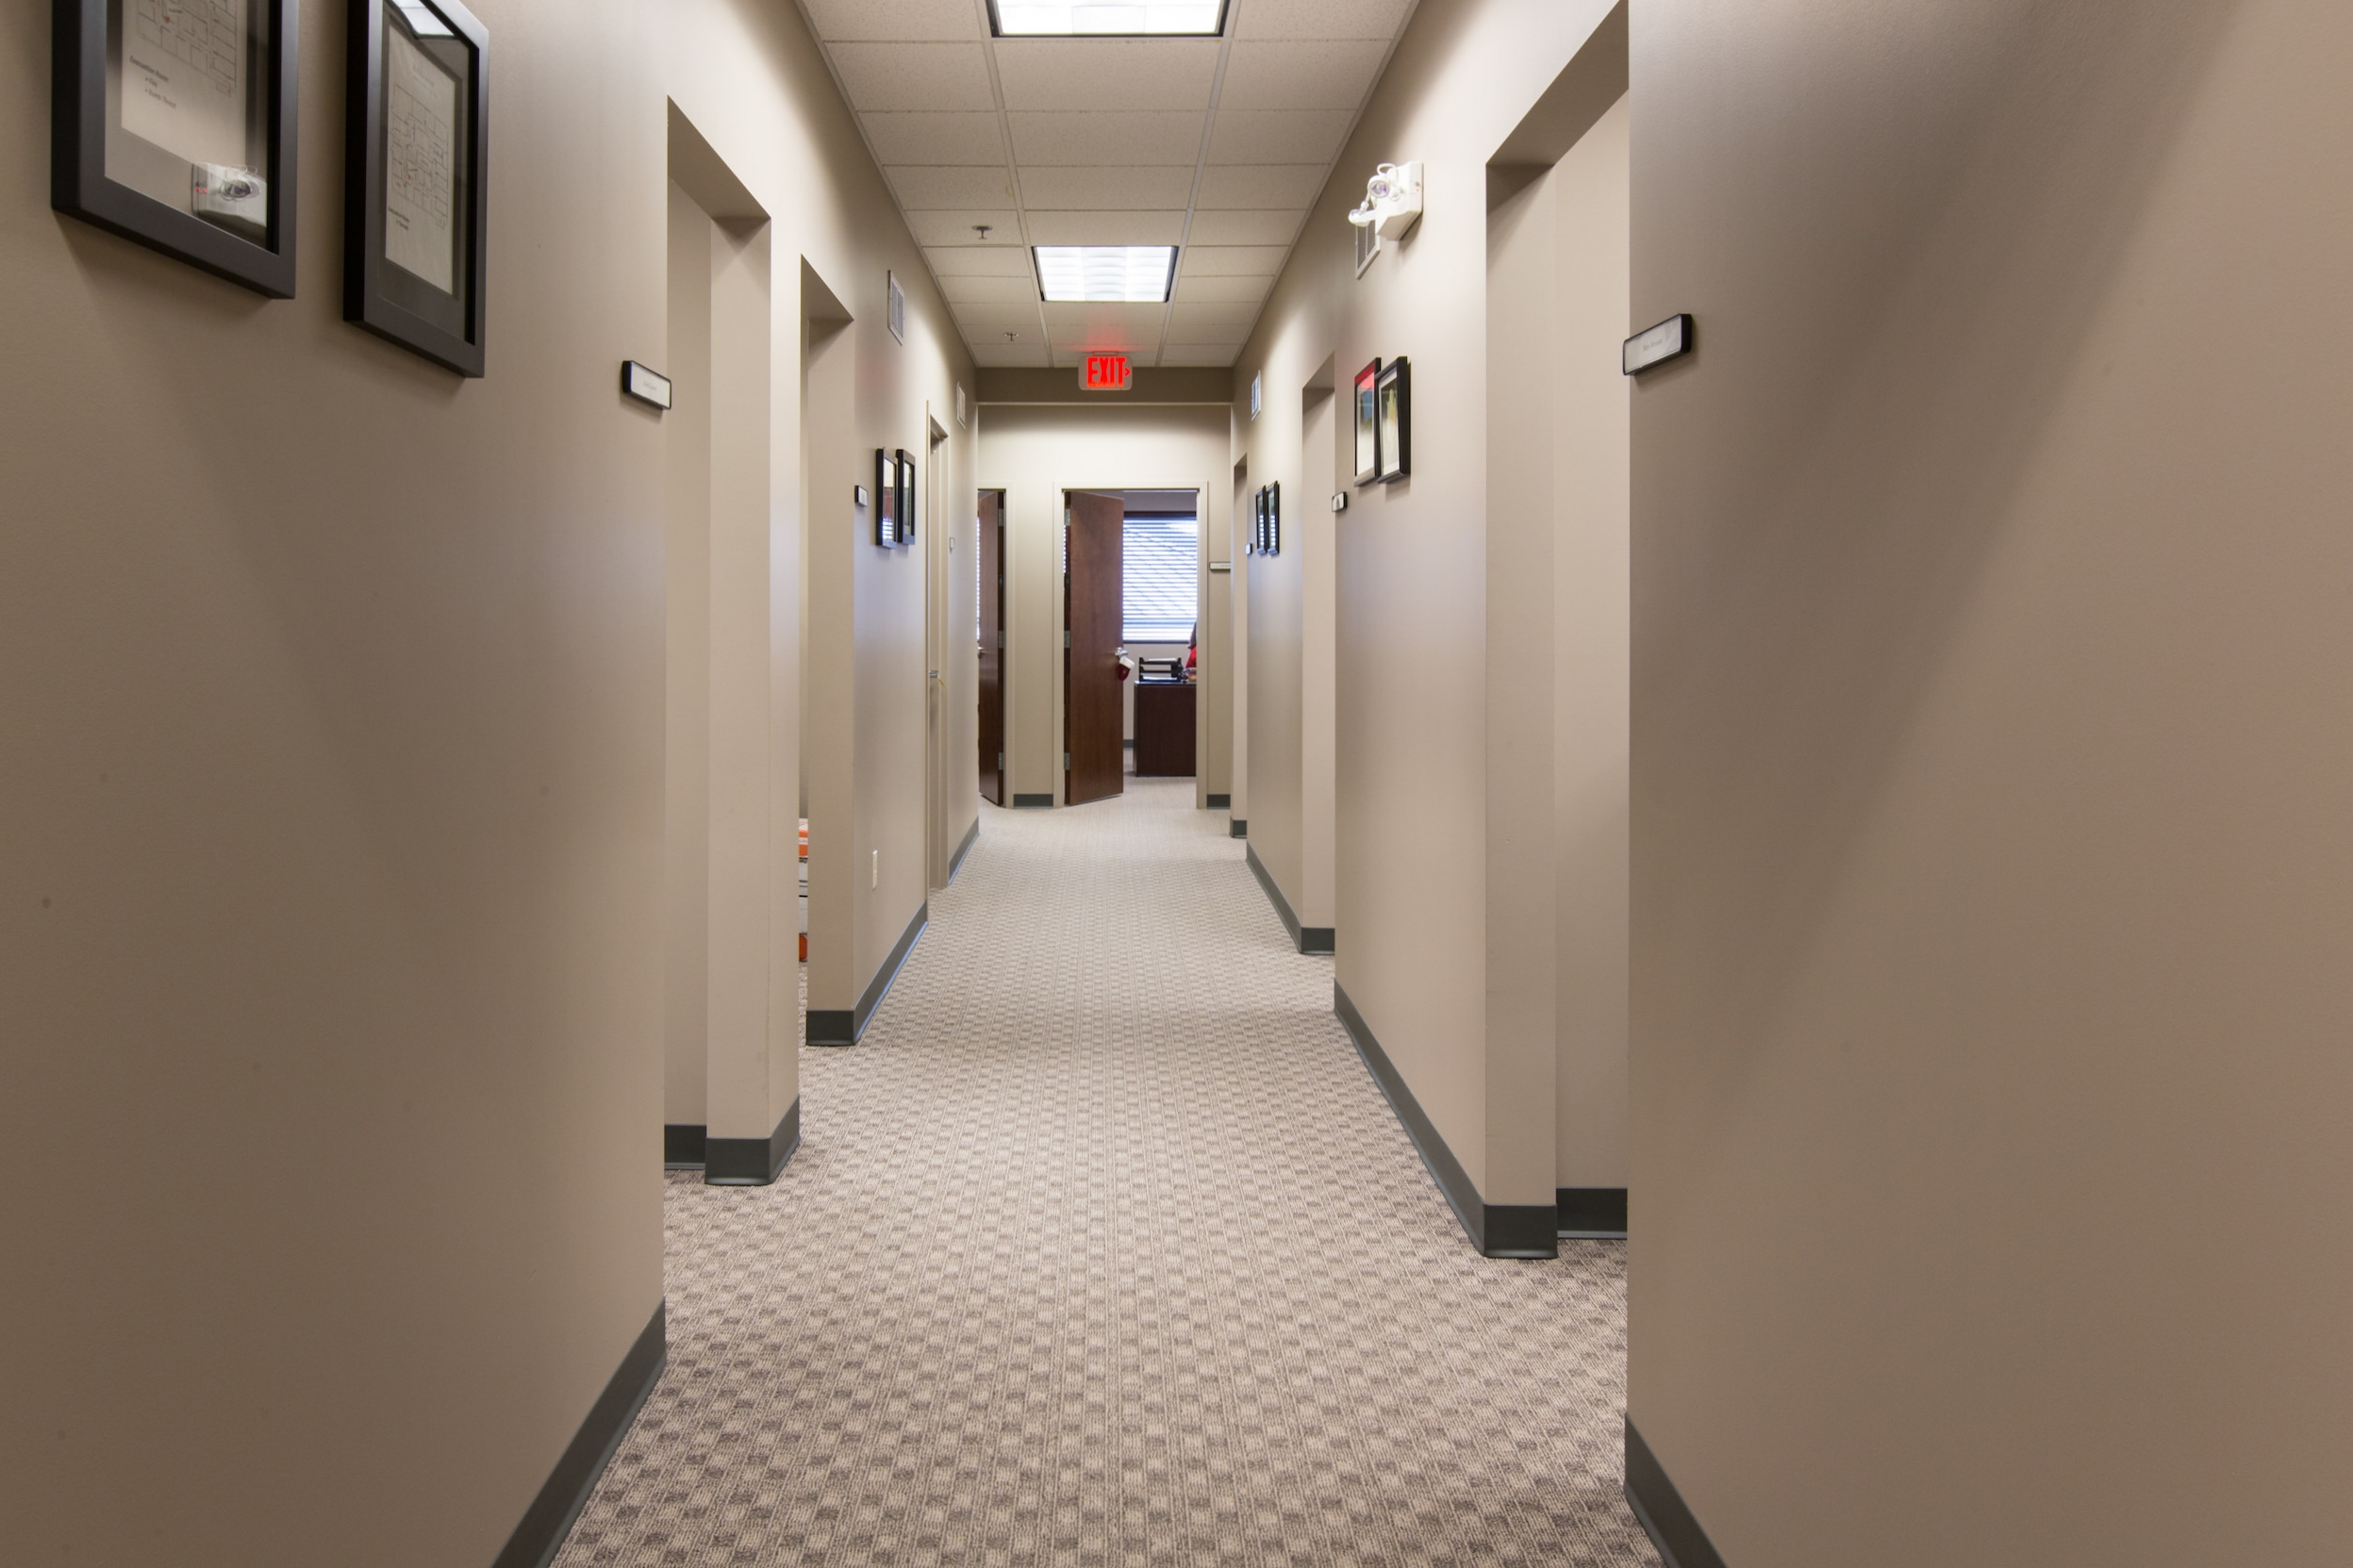 Hallway in the ReDiscover office